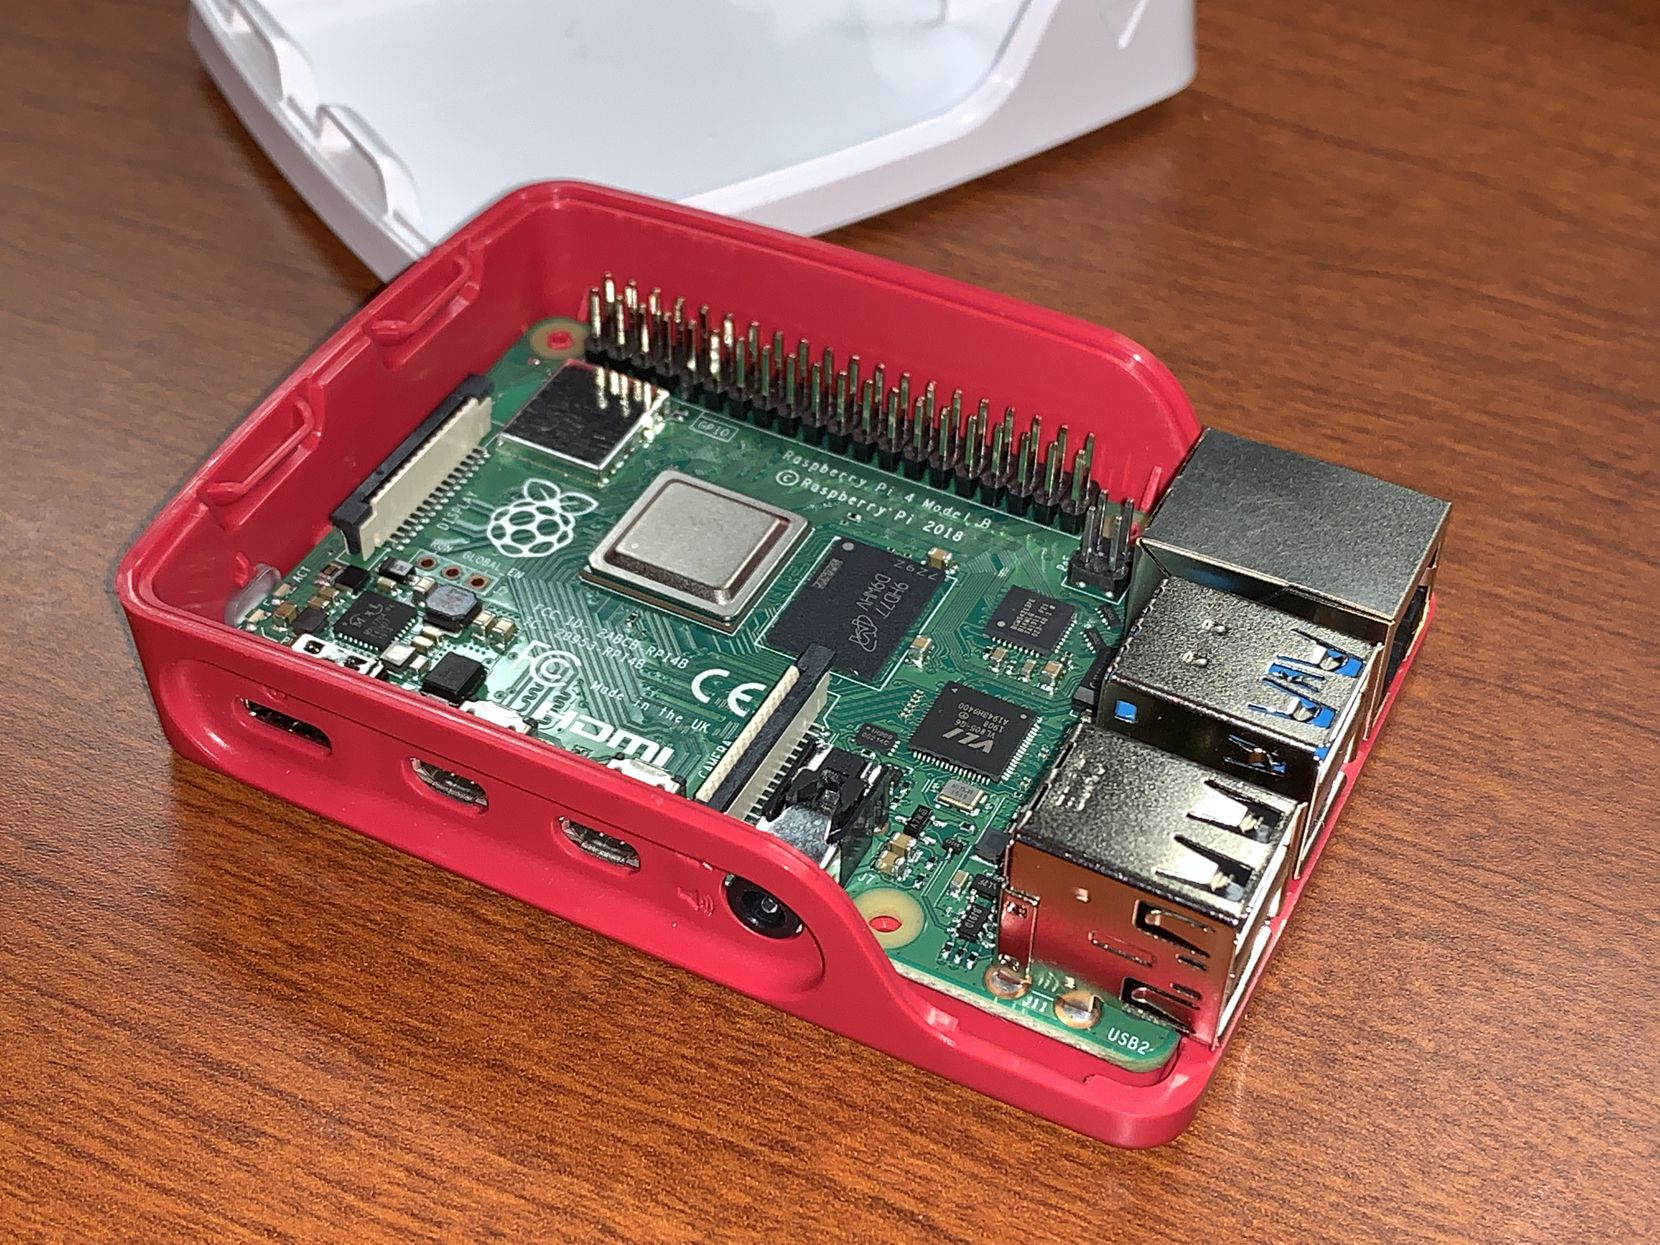 The Raspberry Pi 4 with the case